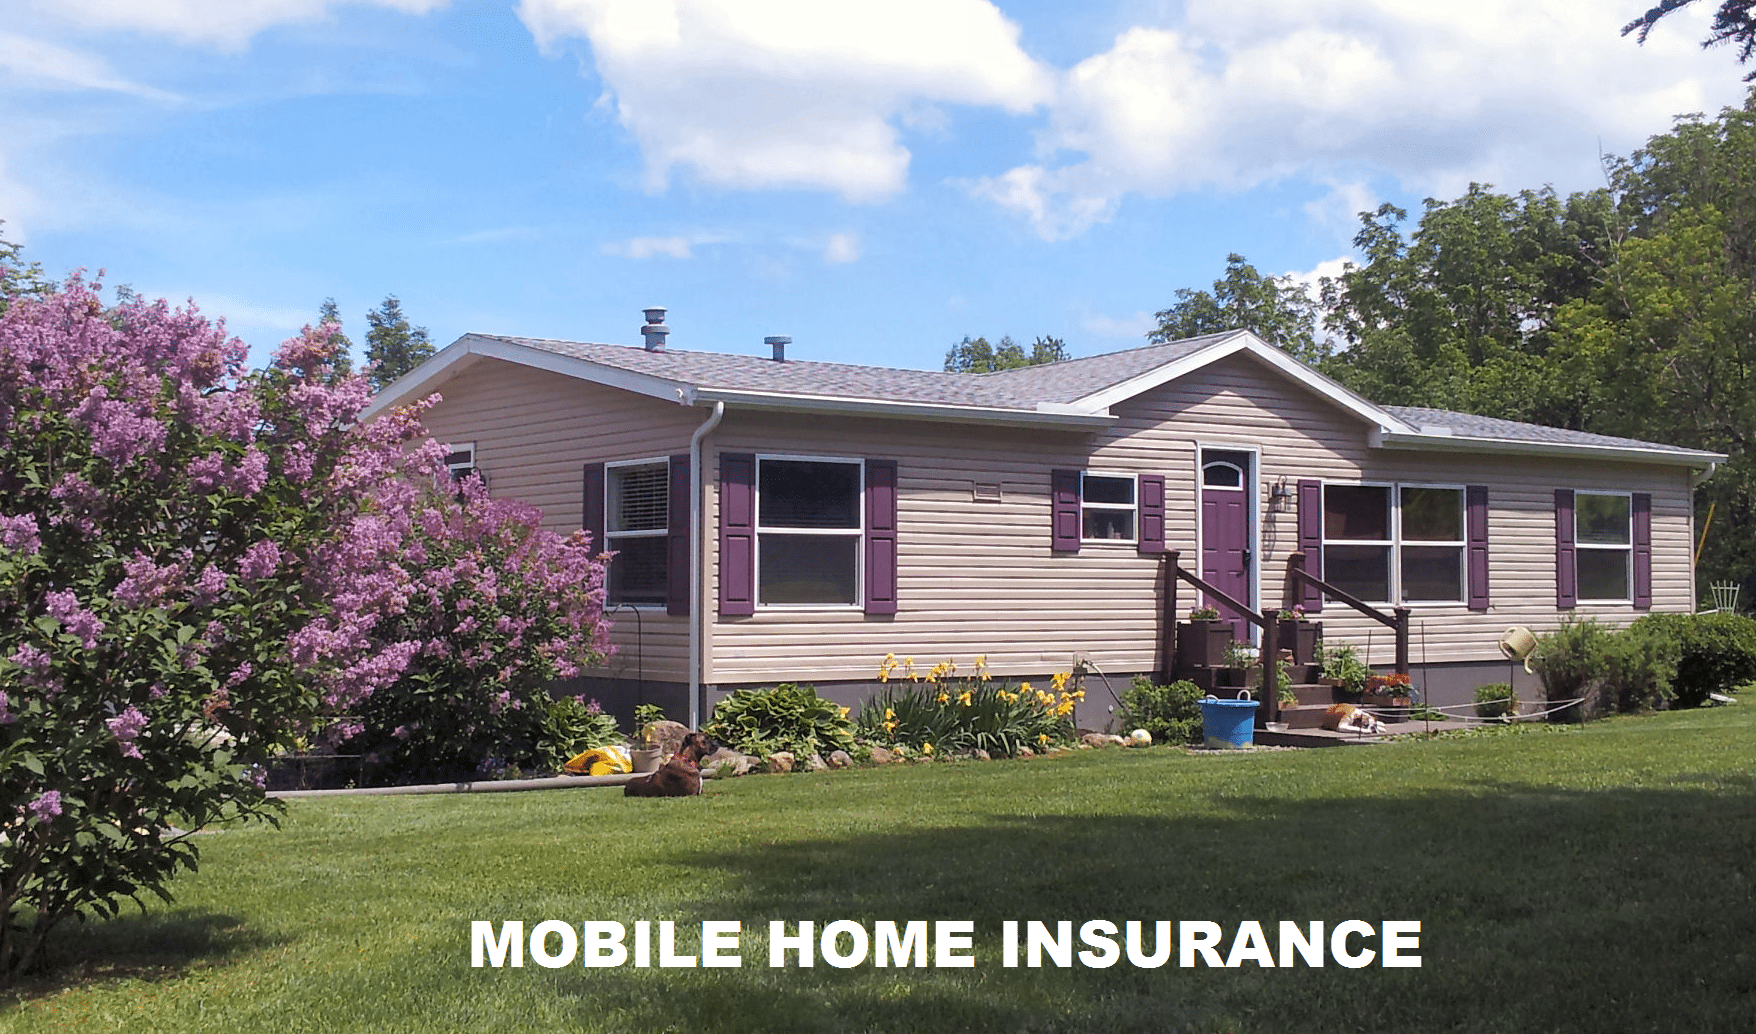 Mobile home insurance tips v w gould agency inc Homeowners insurance florida